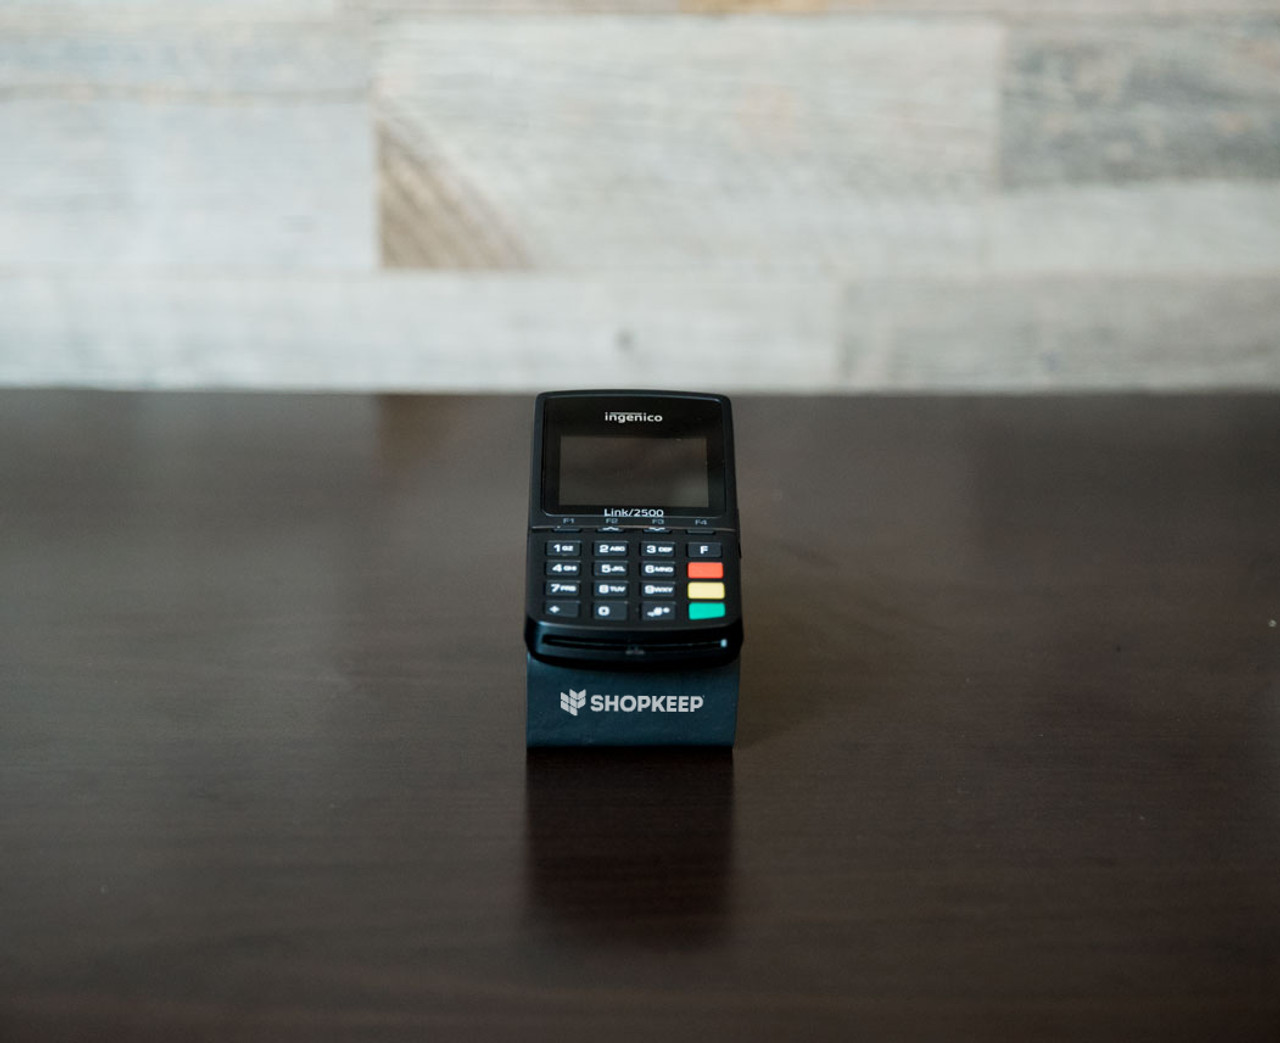 Refurbished Stand for Bluetooth Credit Card Reader